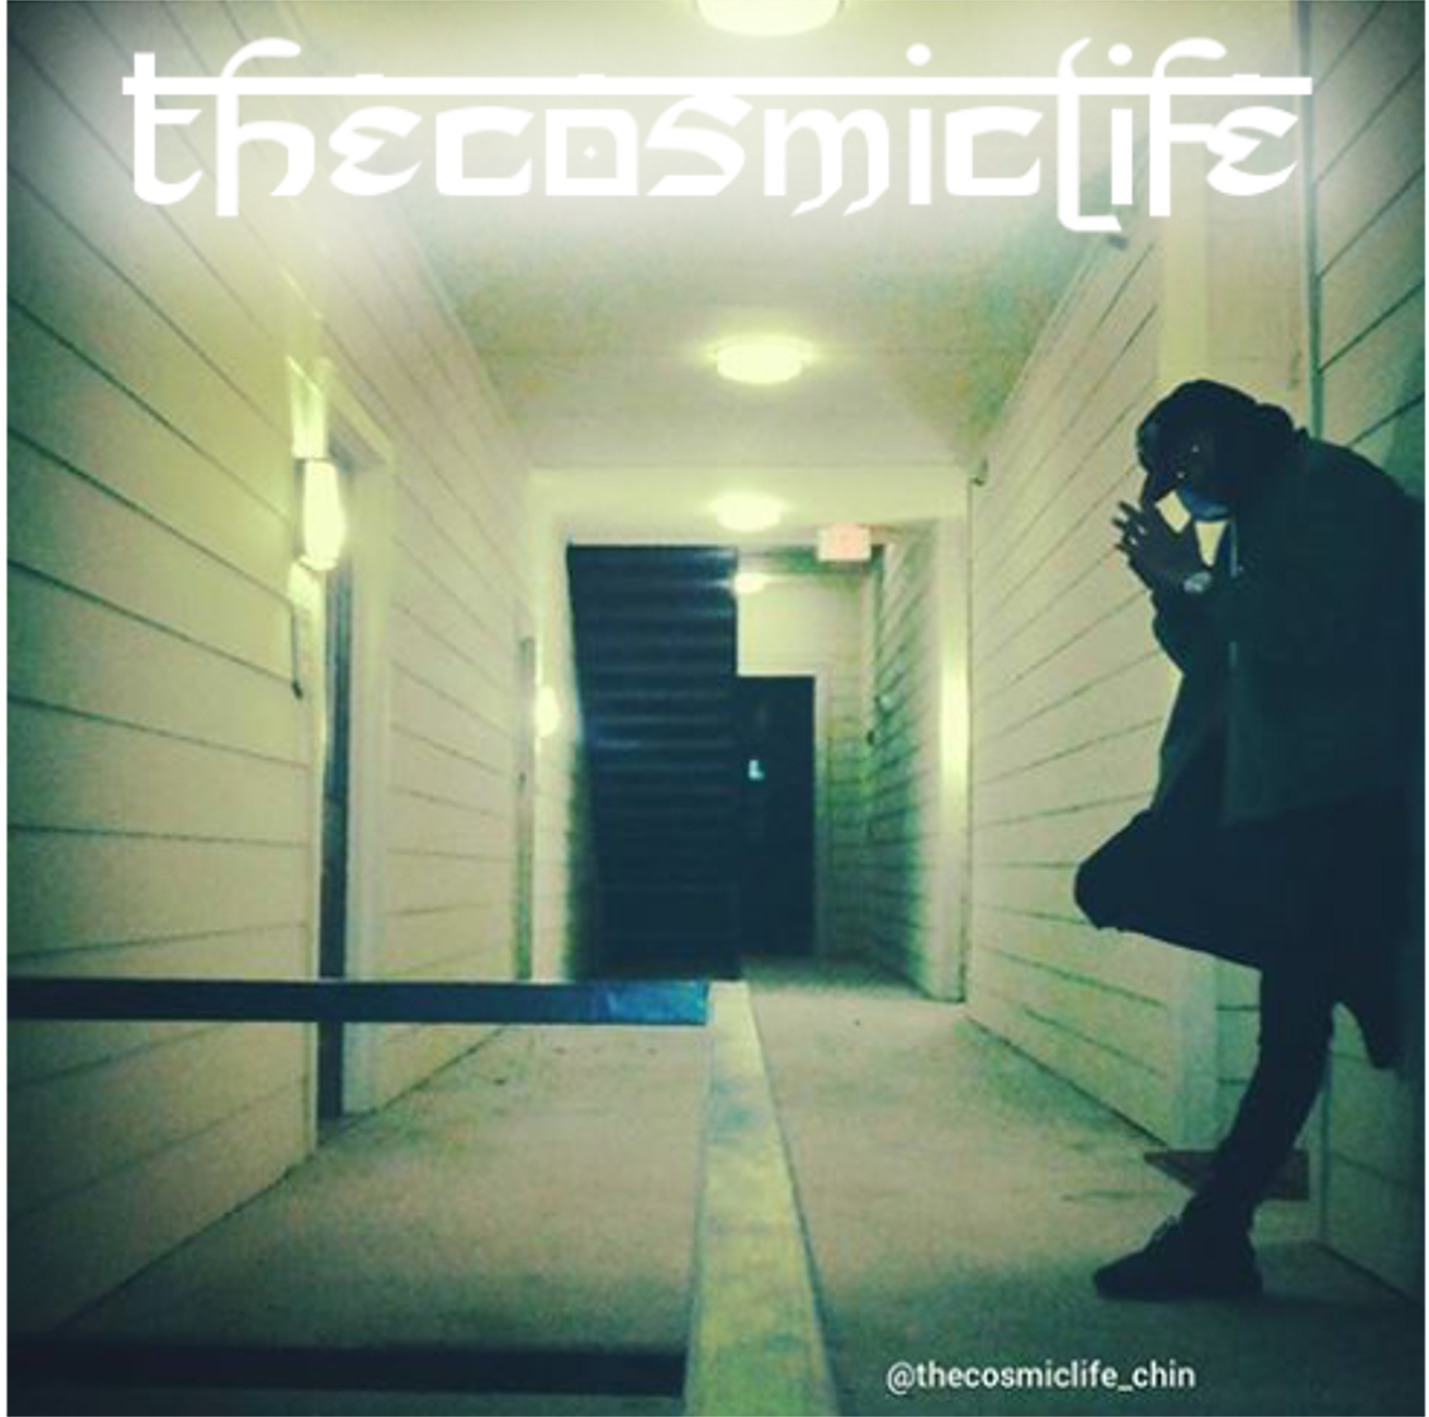 TheCosmicLife